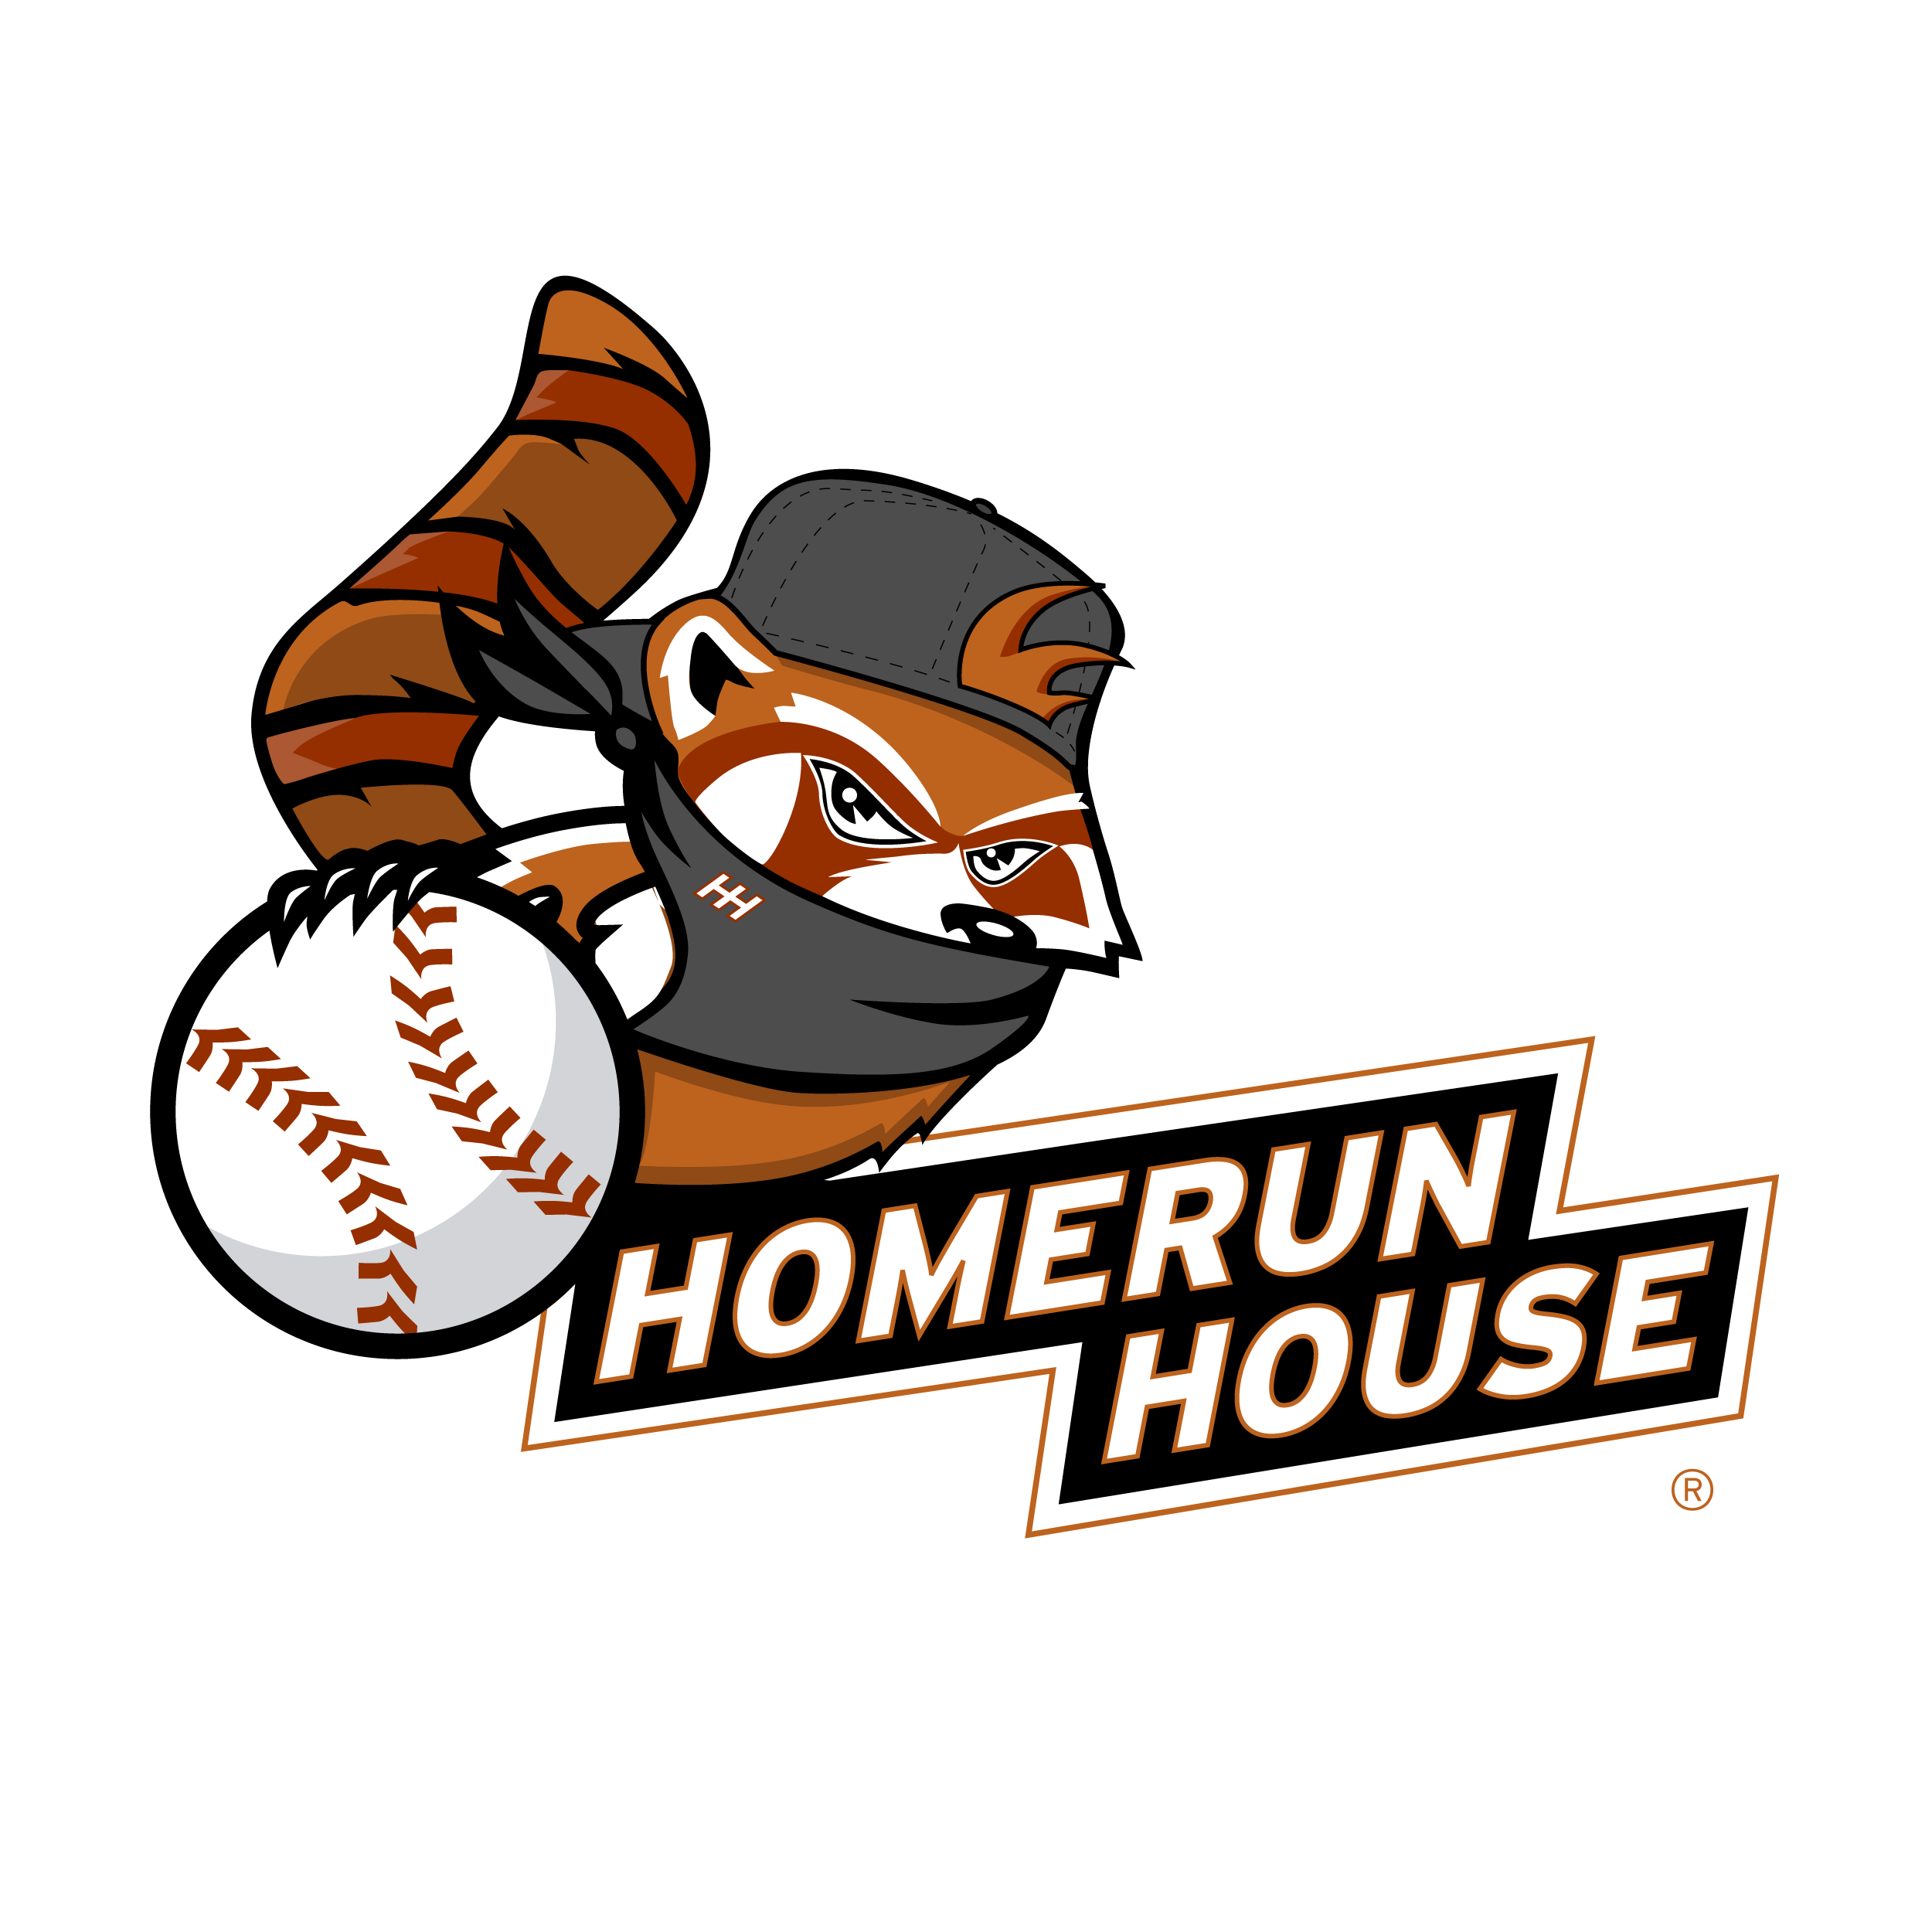 Homerun House